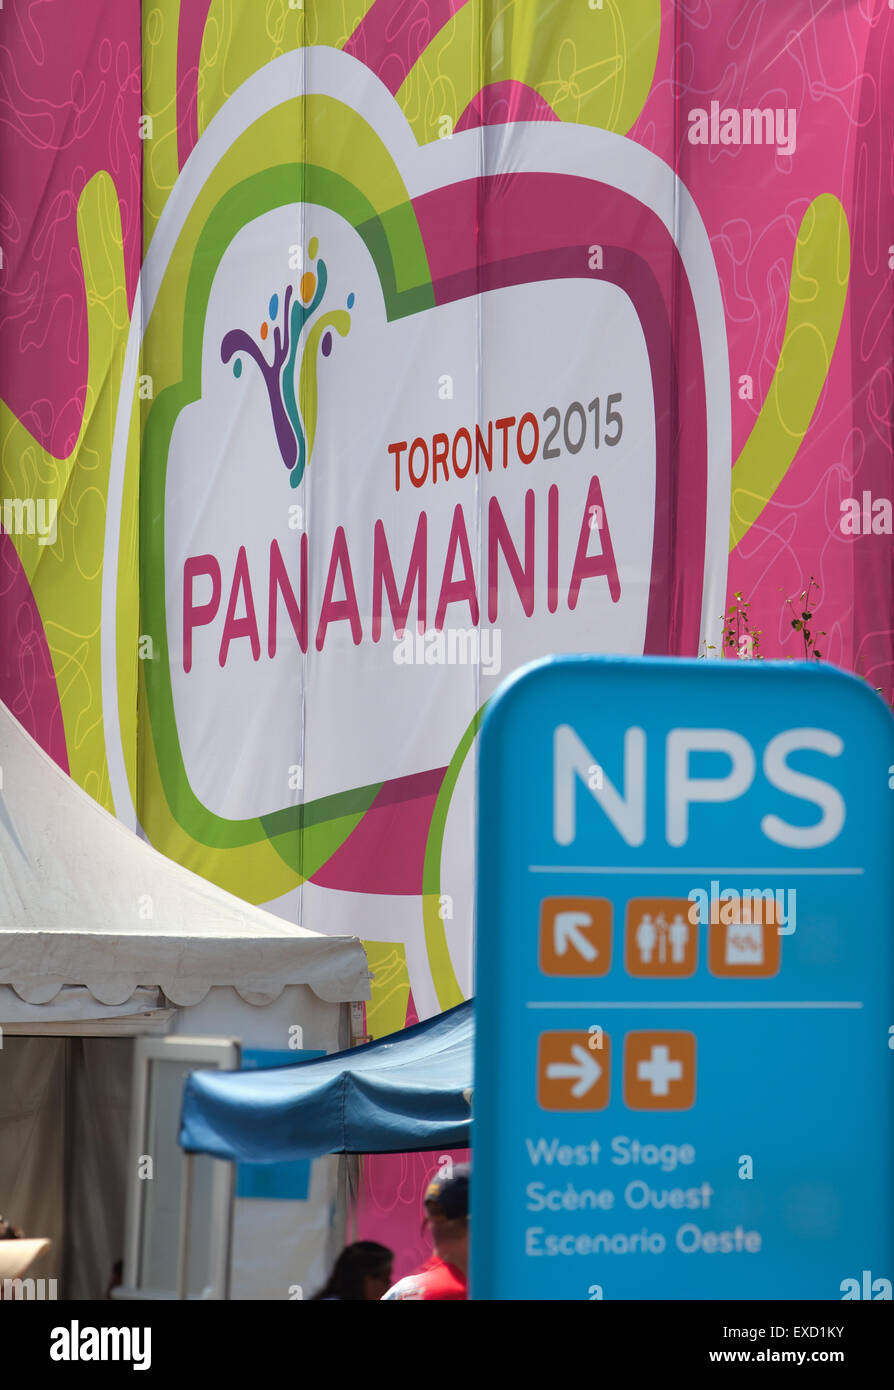 Toronto PanAm 2015 games signage at Nathan Phillips Square - Stock Image